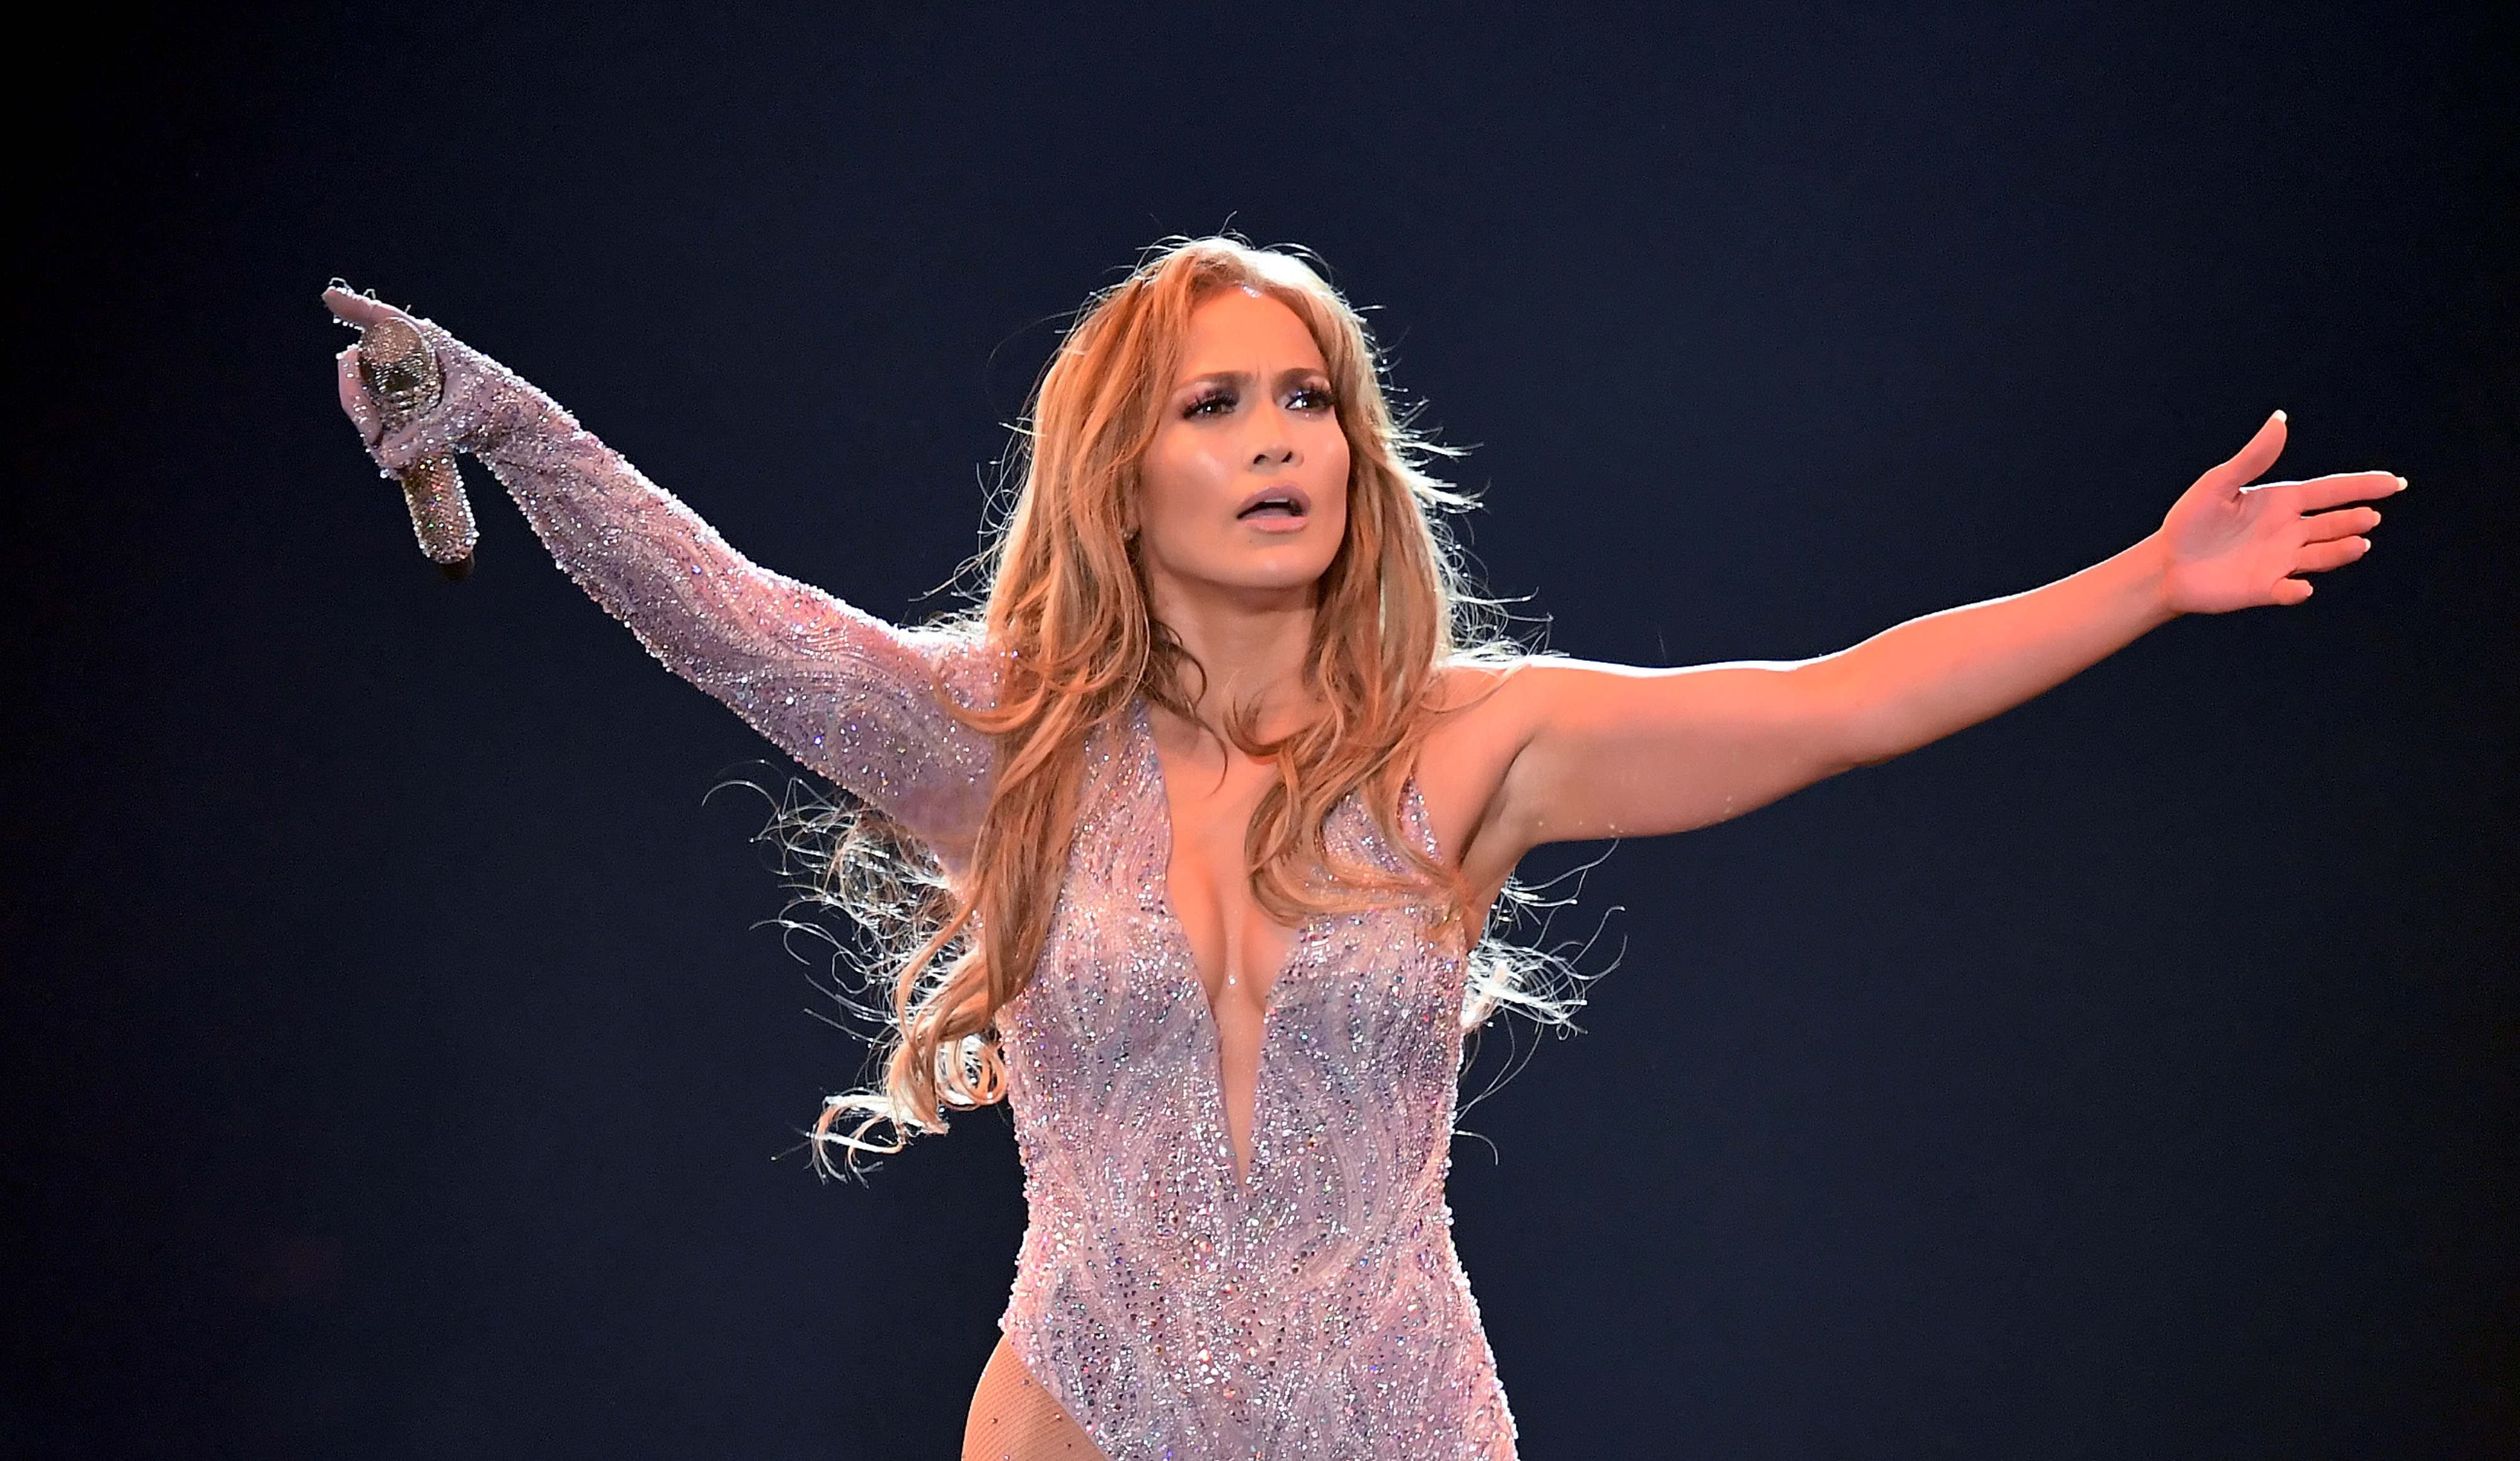 JLo Brought Her Daughter On Stage for a Duet & She Blew Everyone Away